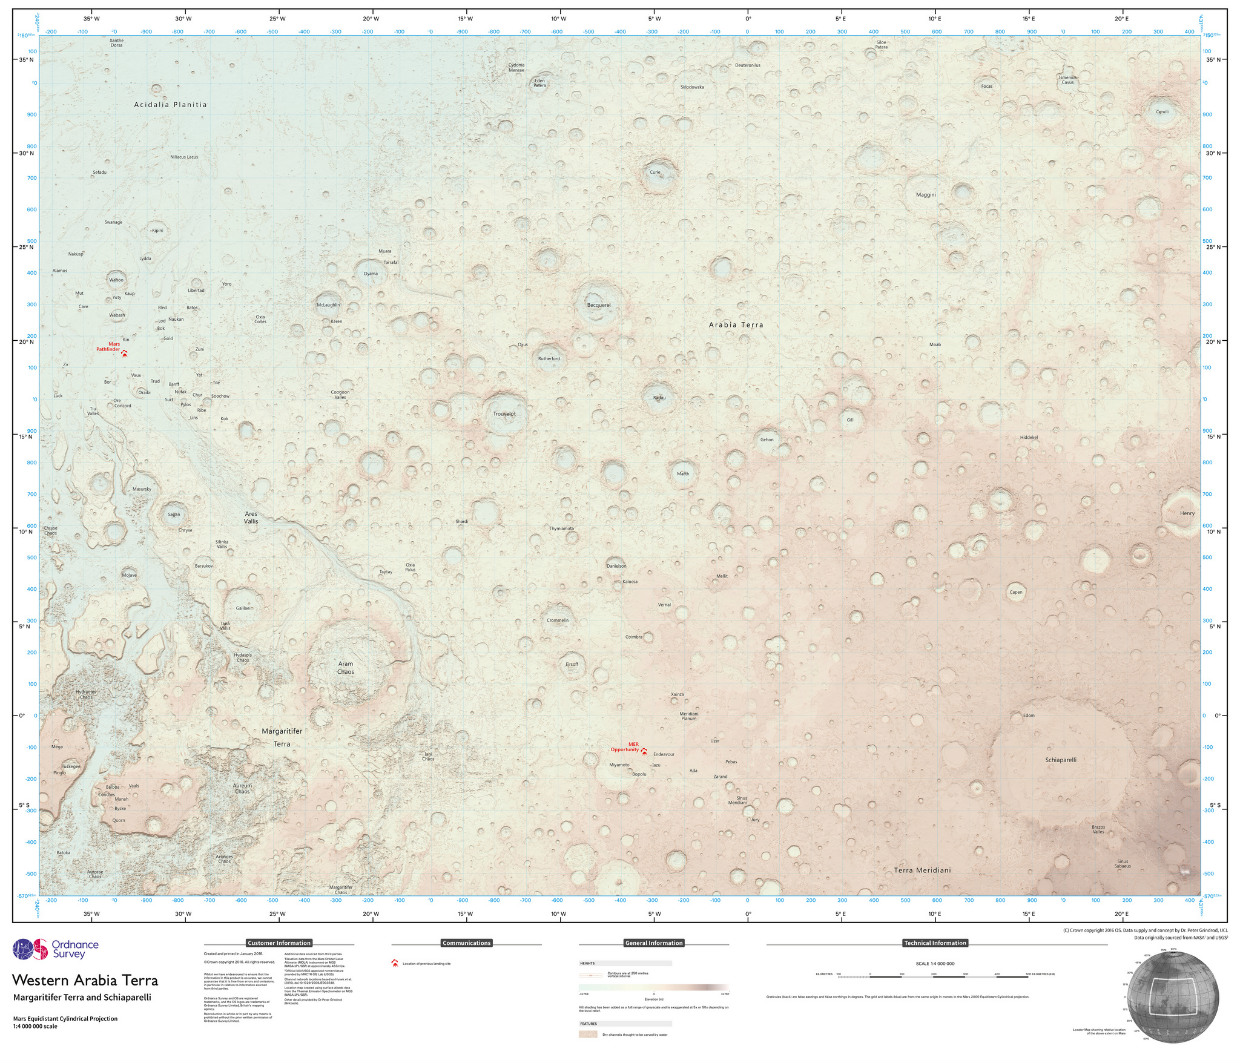 Ordnance Survey create a map of the surface of Mars